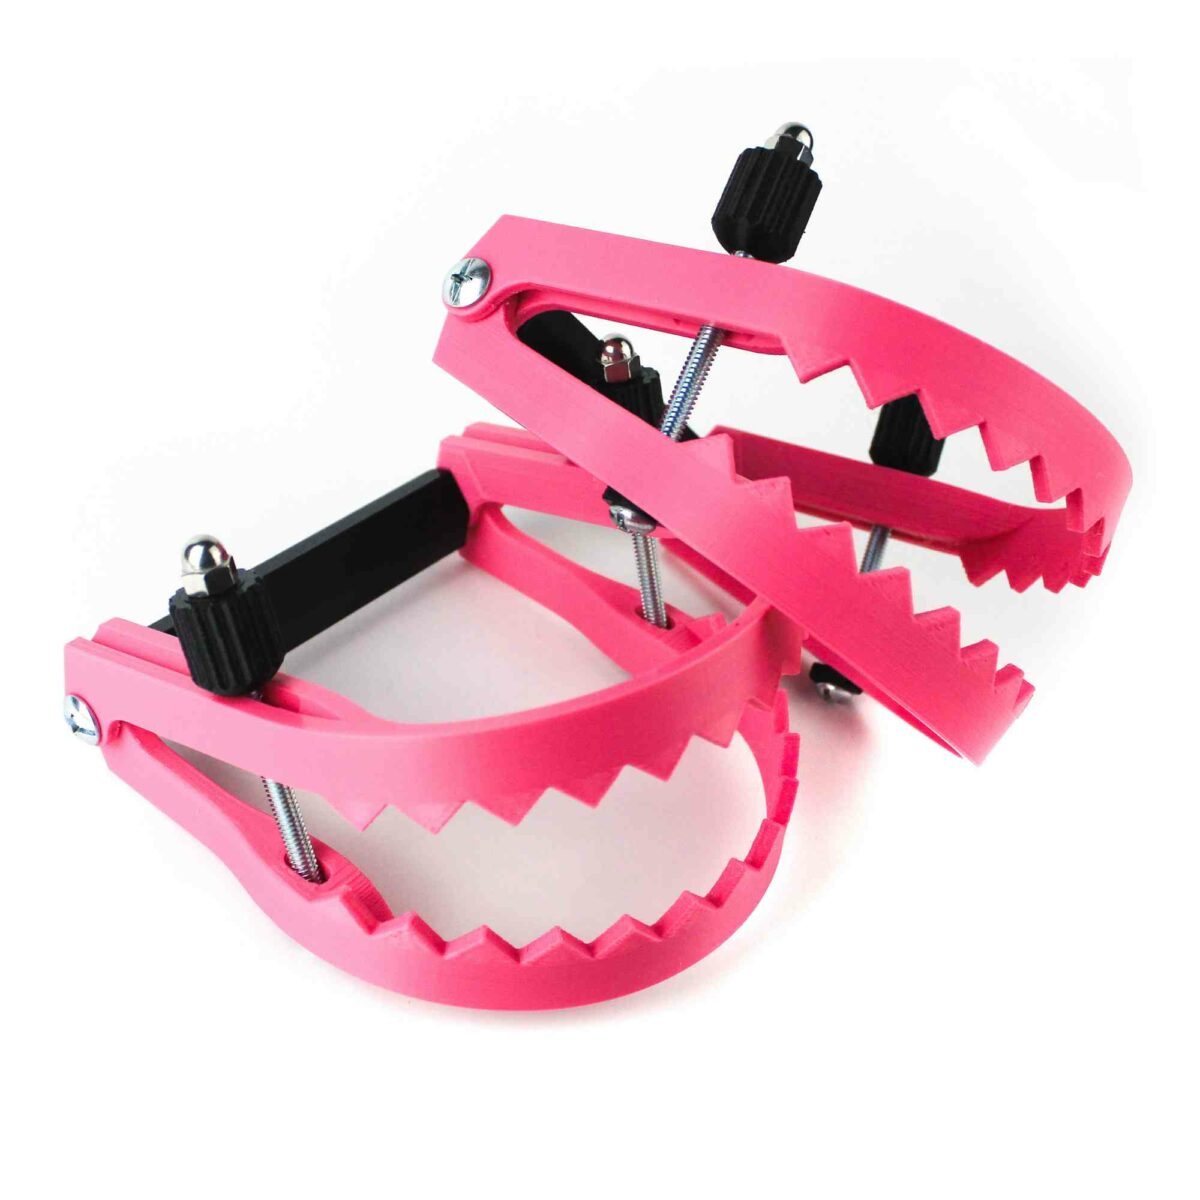 Breast Traps, the bear trap shaped breast crusher, also known as breast vices or breast vises, if you're a stickler about spelling. We've also heard it called a breast press too.